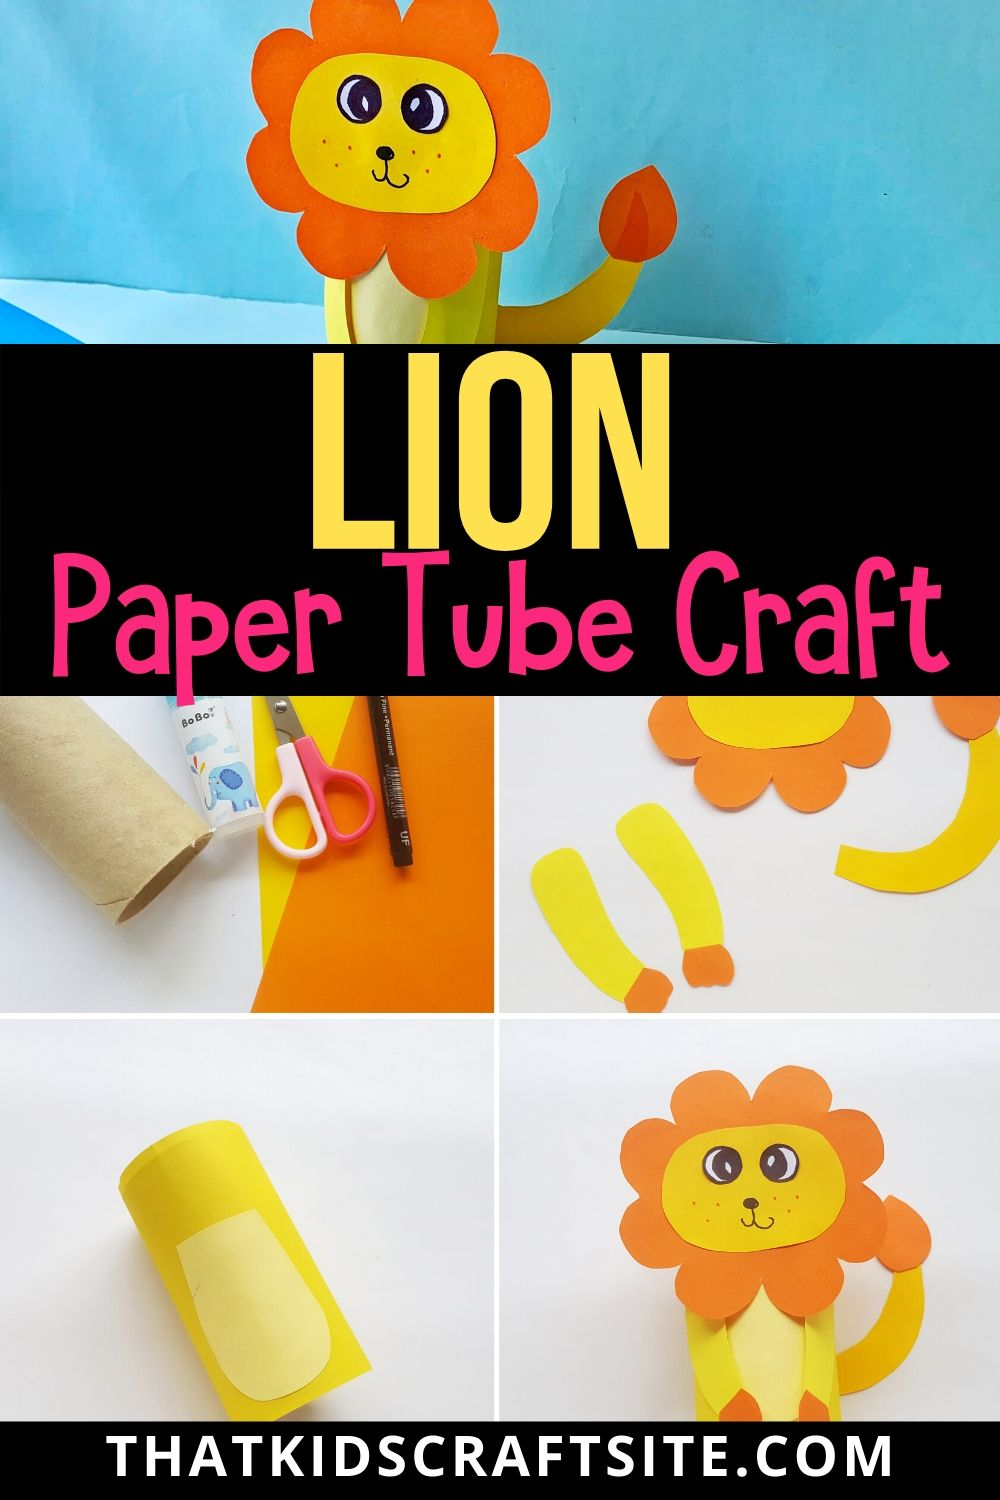 Lion Paper Tube Craft for Kids